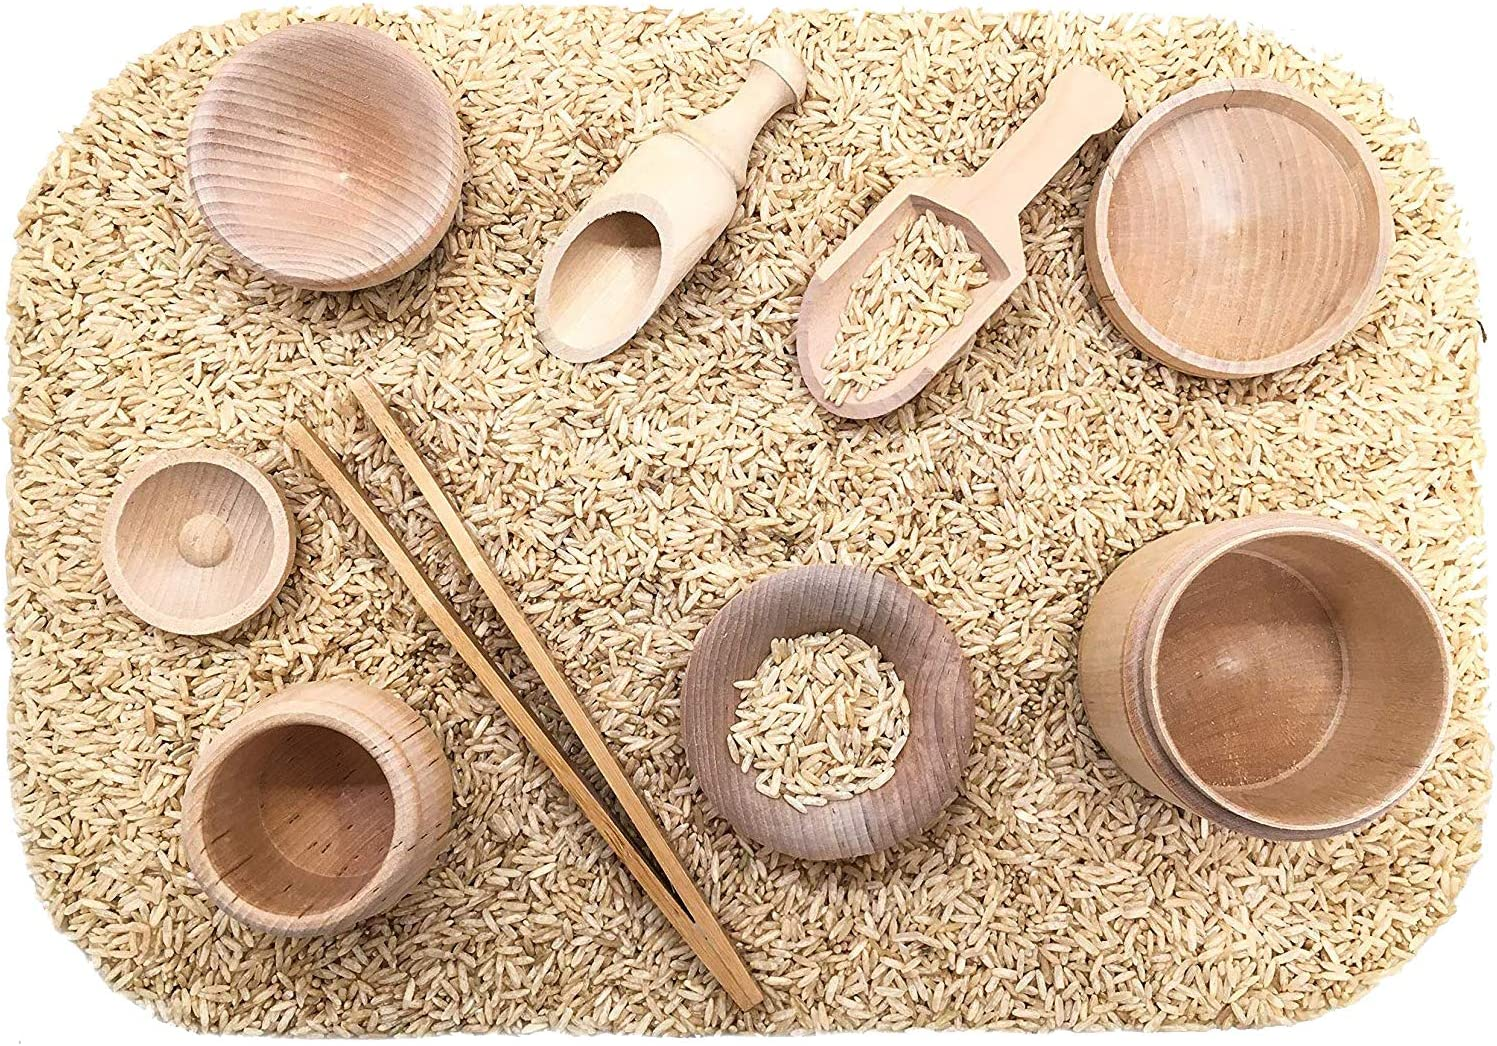 SimplytoPlay Sensory Bin Tools, Montessori Toys for Toddlers, Waldorf Toys, Wooden Scoops and Tongs for Transfer Work and Fine Motor Learning